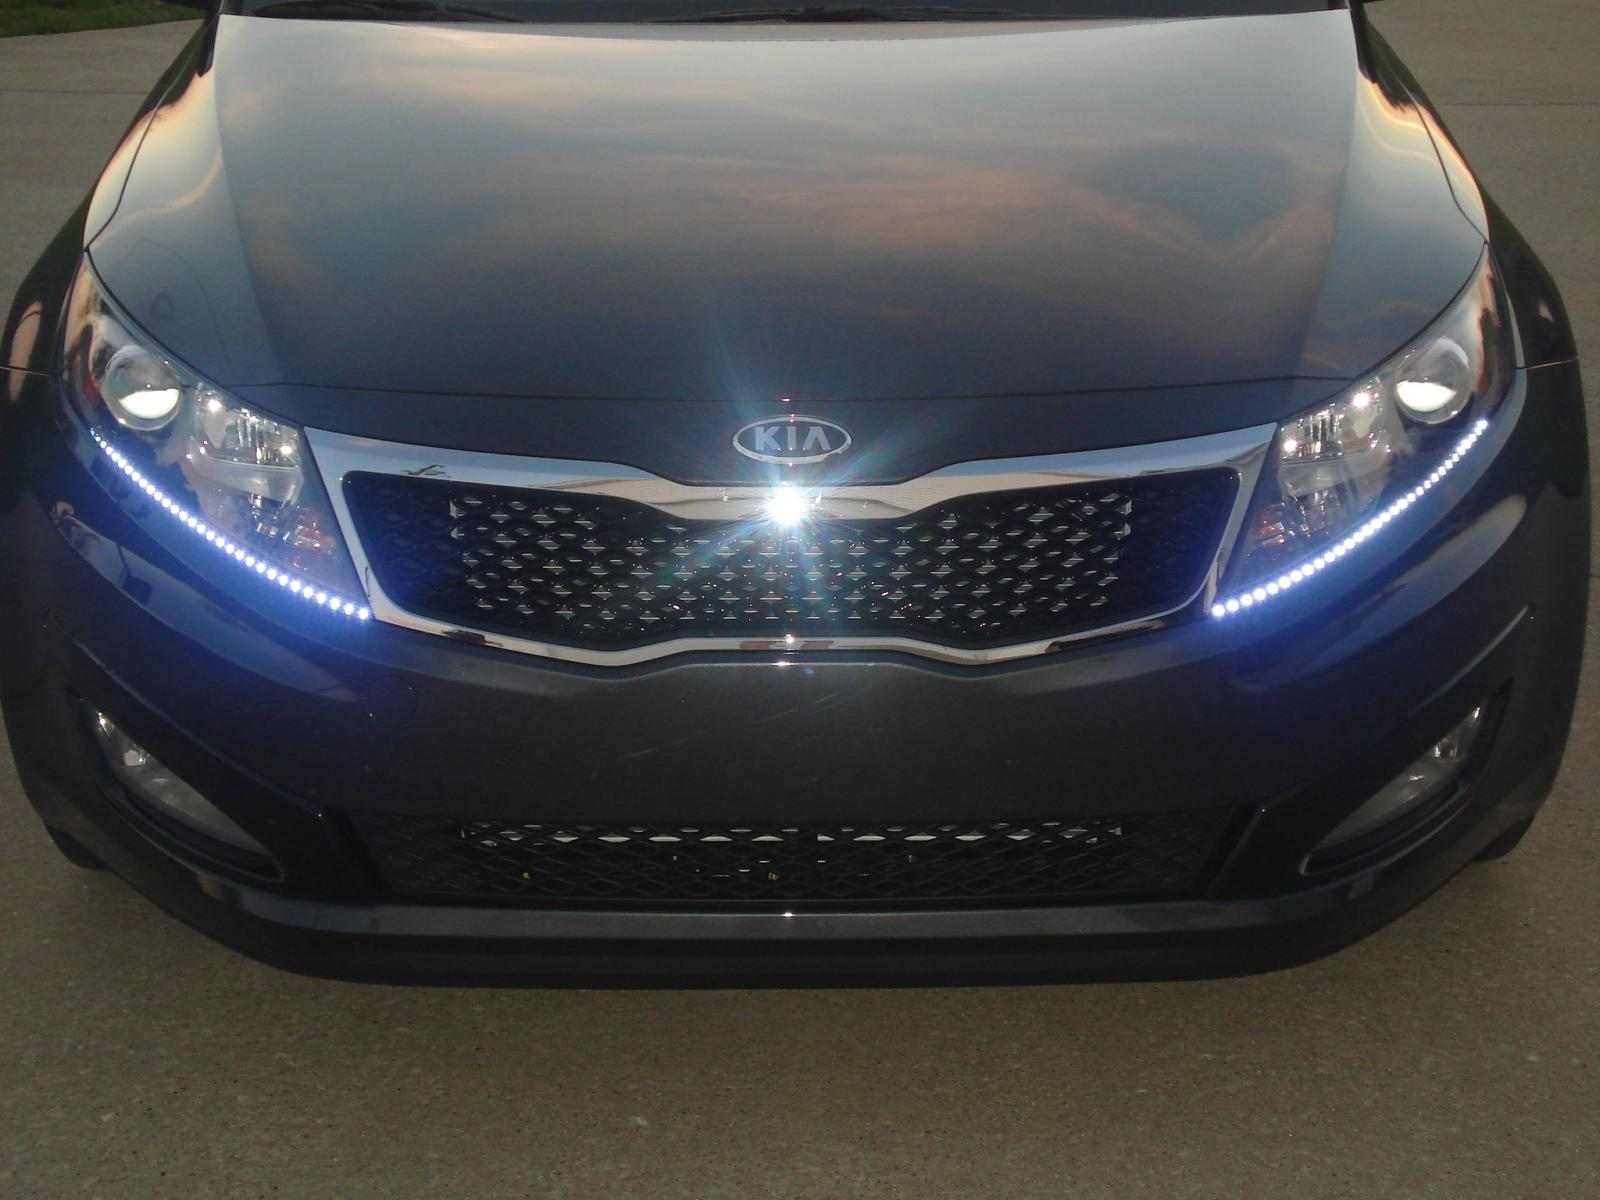 Add On LED Light Strips - What do you think? - Kia Forum